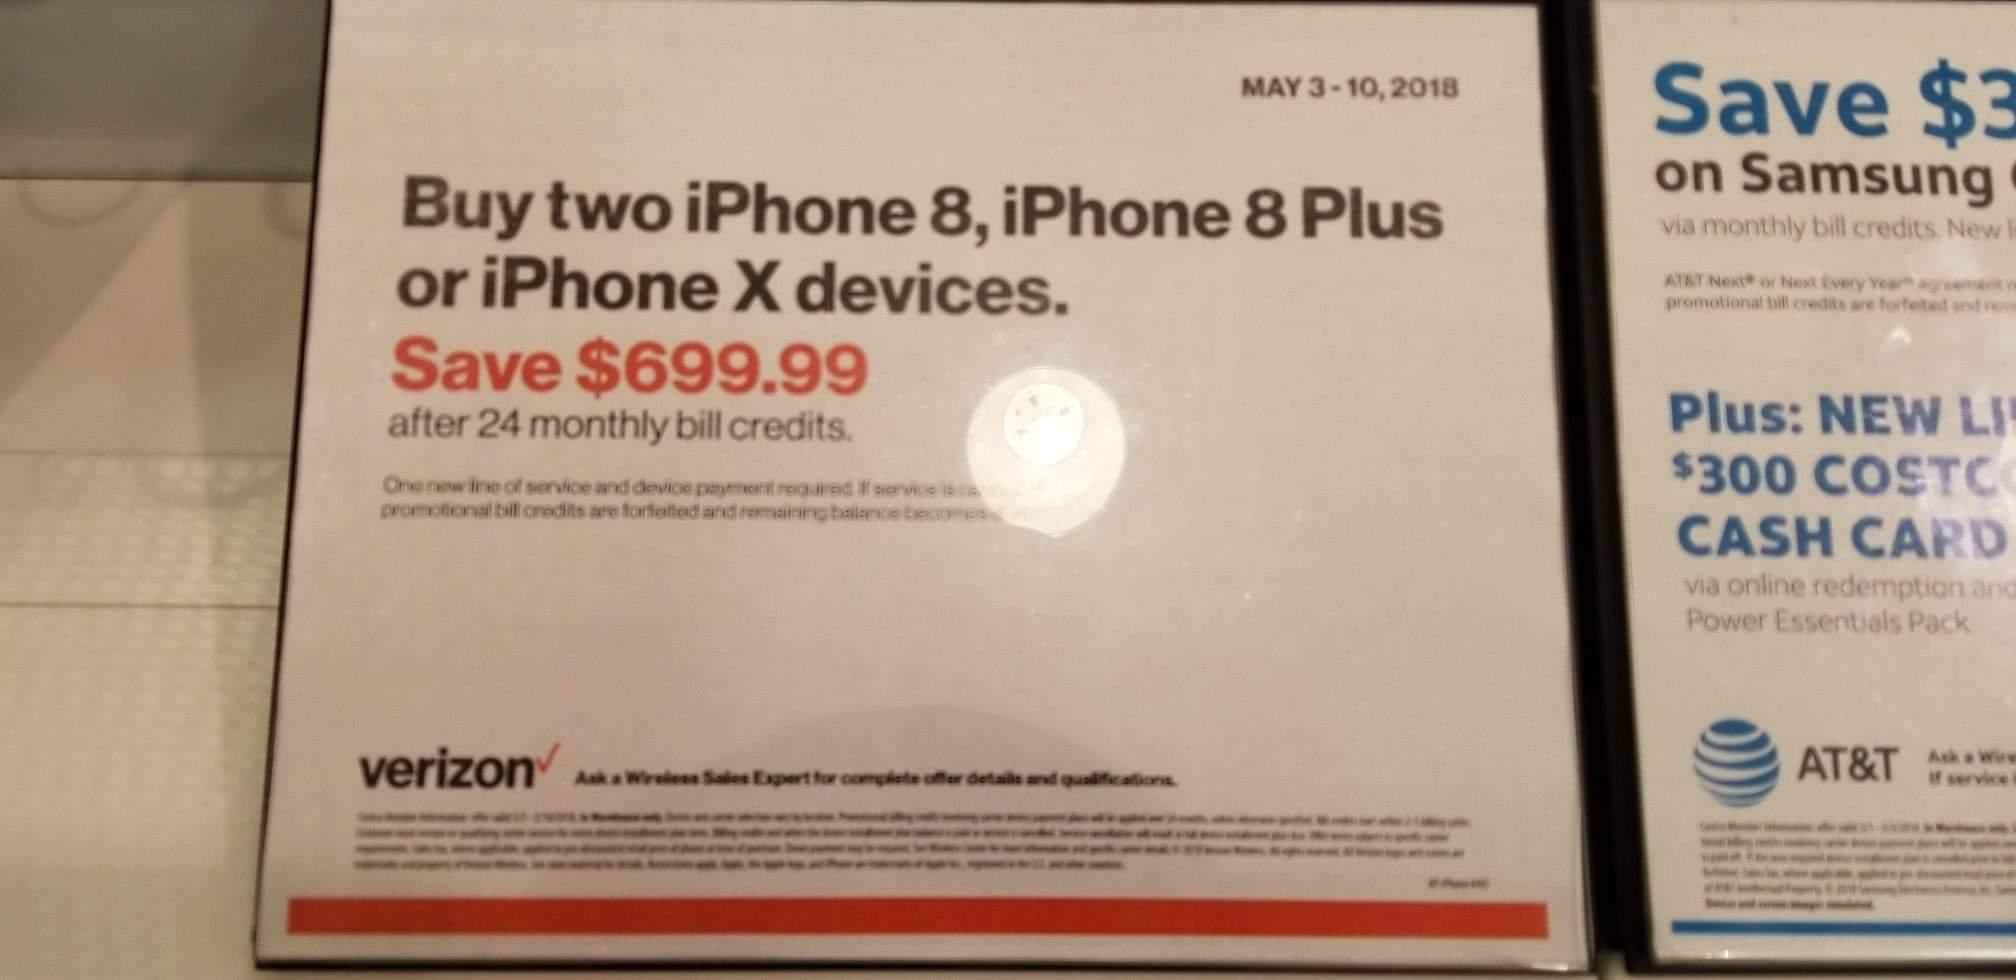 Costco In-Store: Verizon iPhone 8, 8+, or X Buy Two save $699 via bill credit May 3-10th *One line must be new*